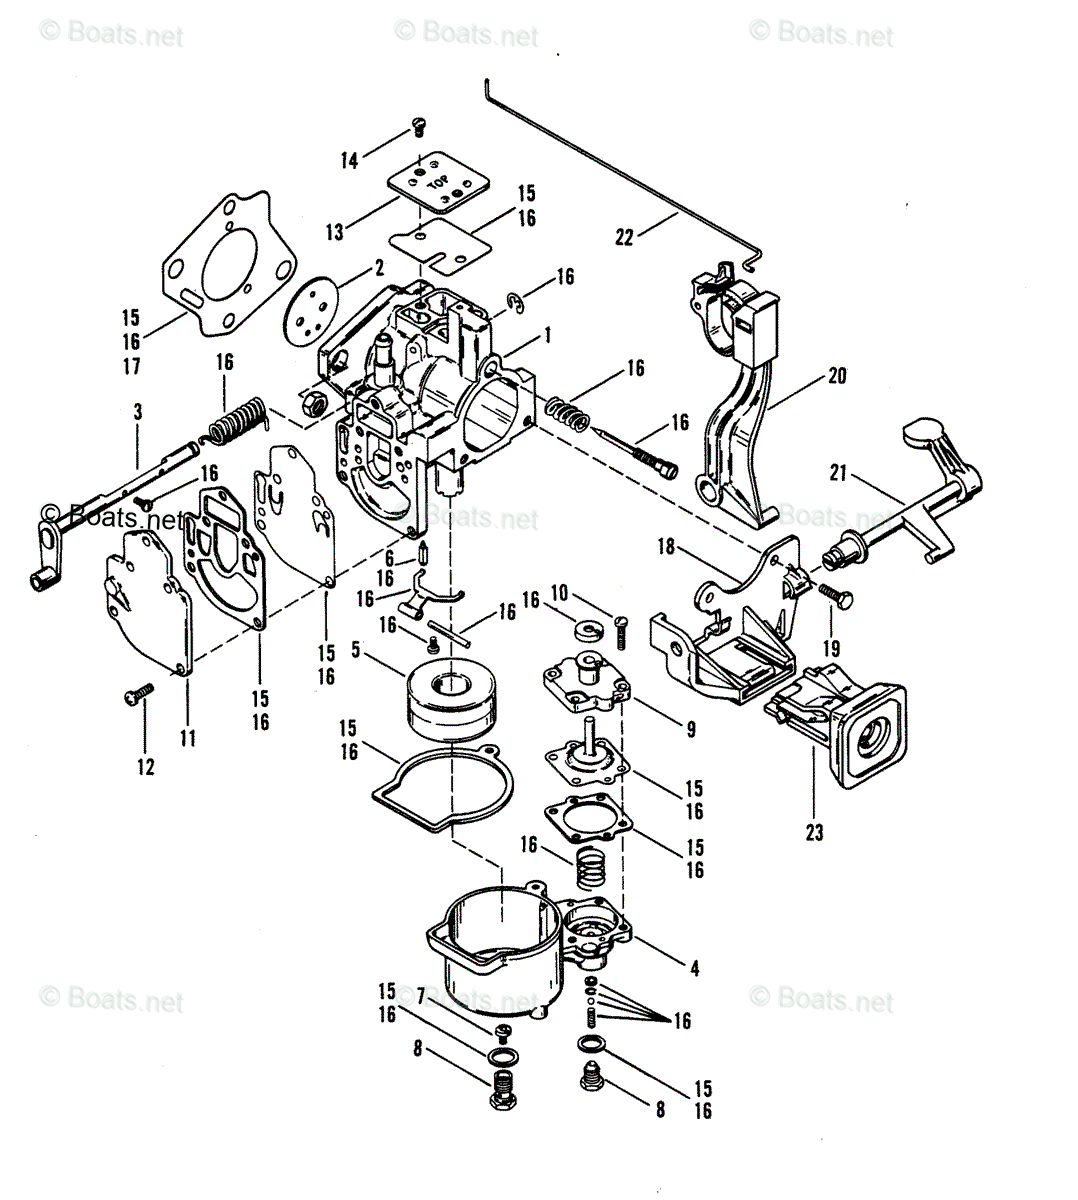 evinrude etec 225 wiring diagram 1992 toyota hilux horn 175 e tec schematic fuel filter database outboard starter mariner 25 hp